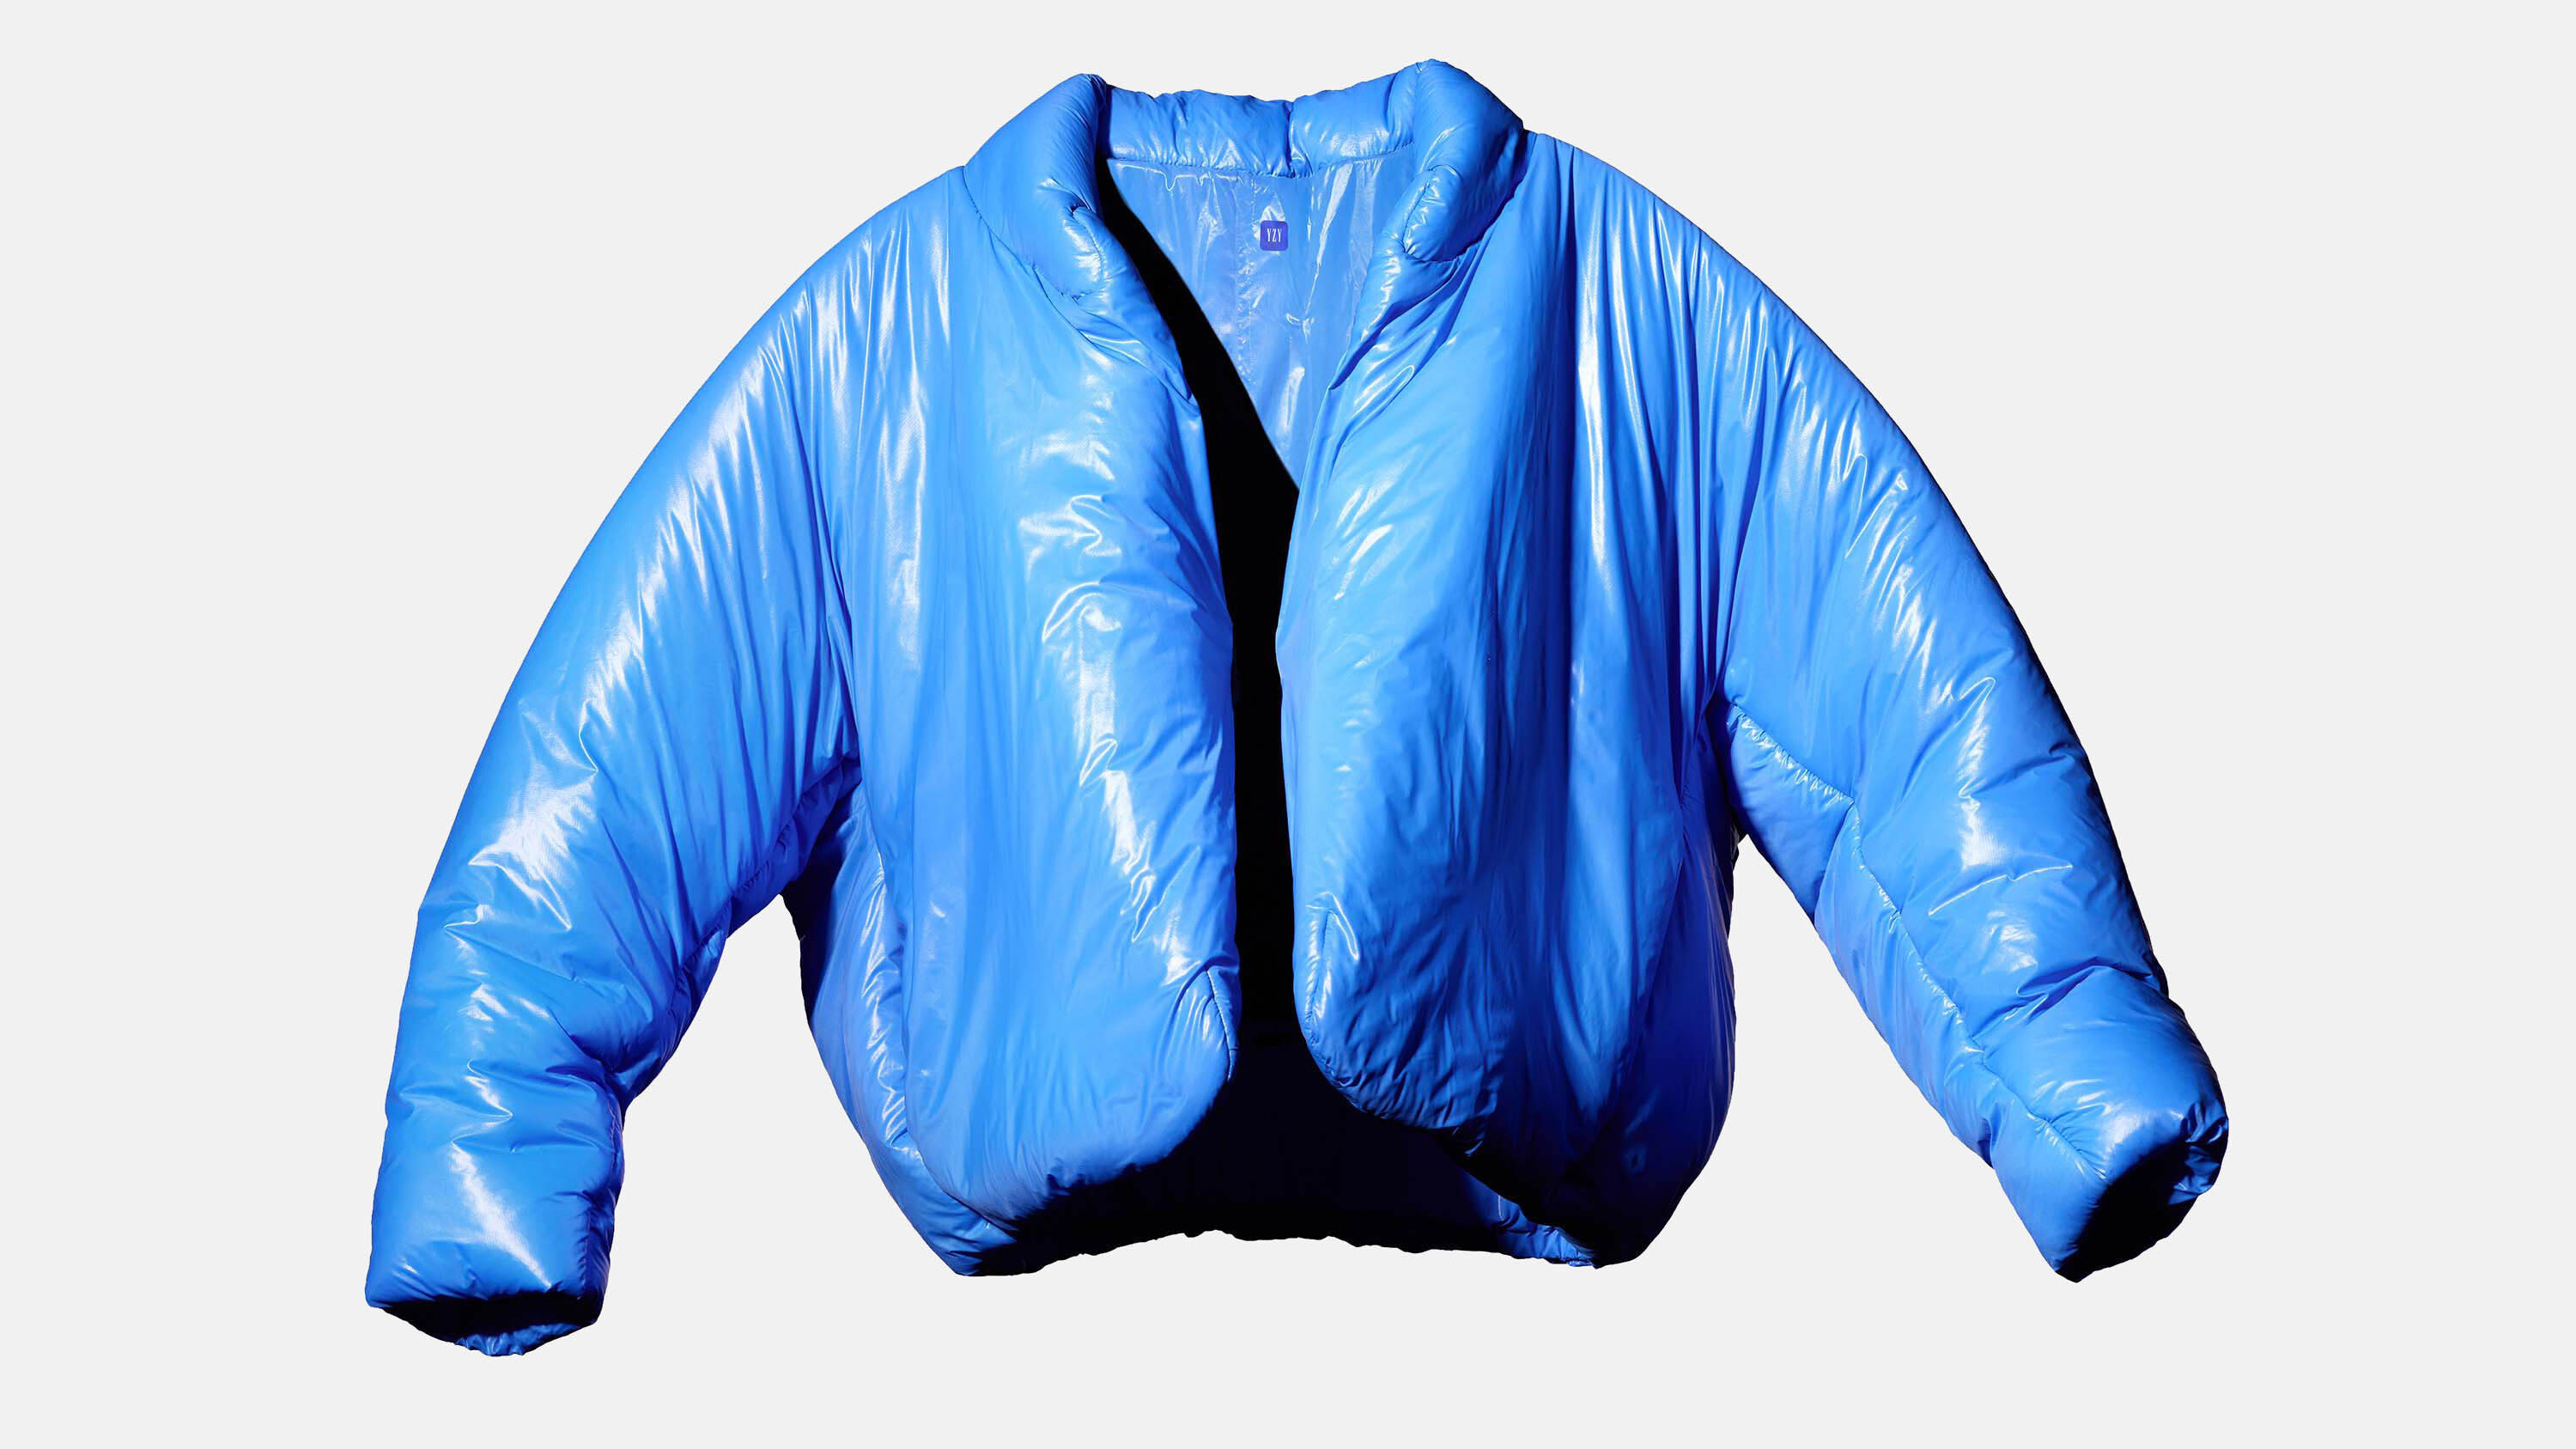 Kanye West's Yeezy jacket is a huge hit for Gap